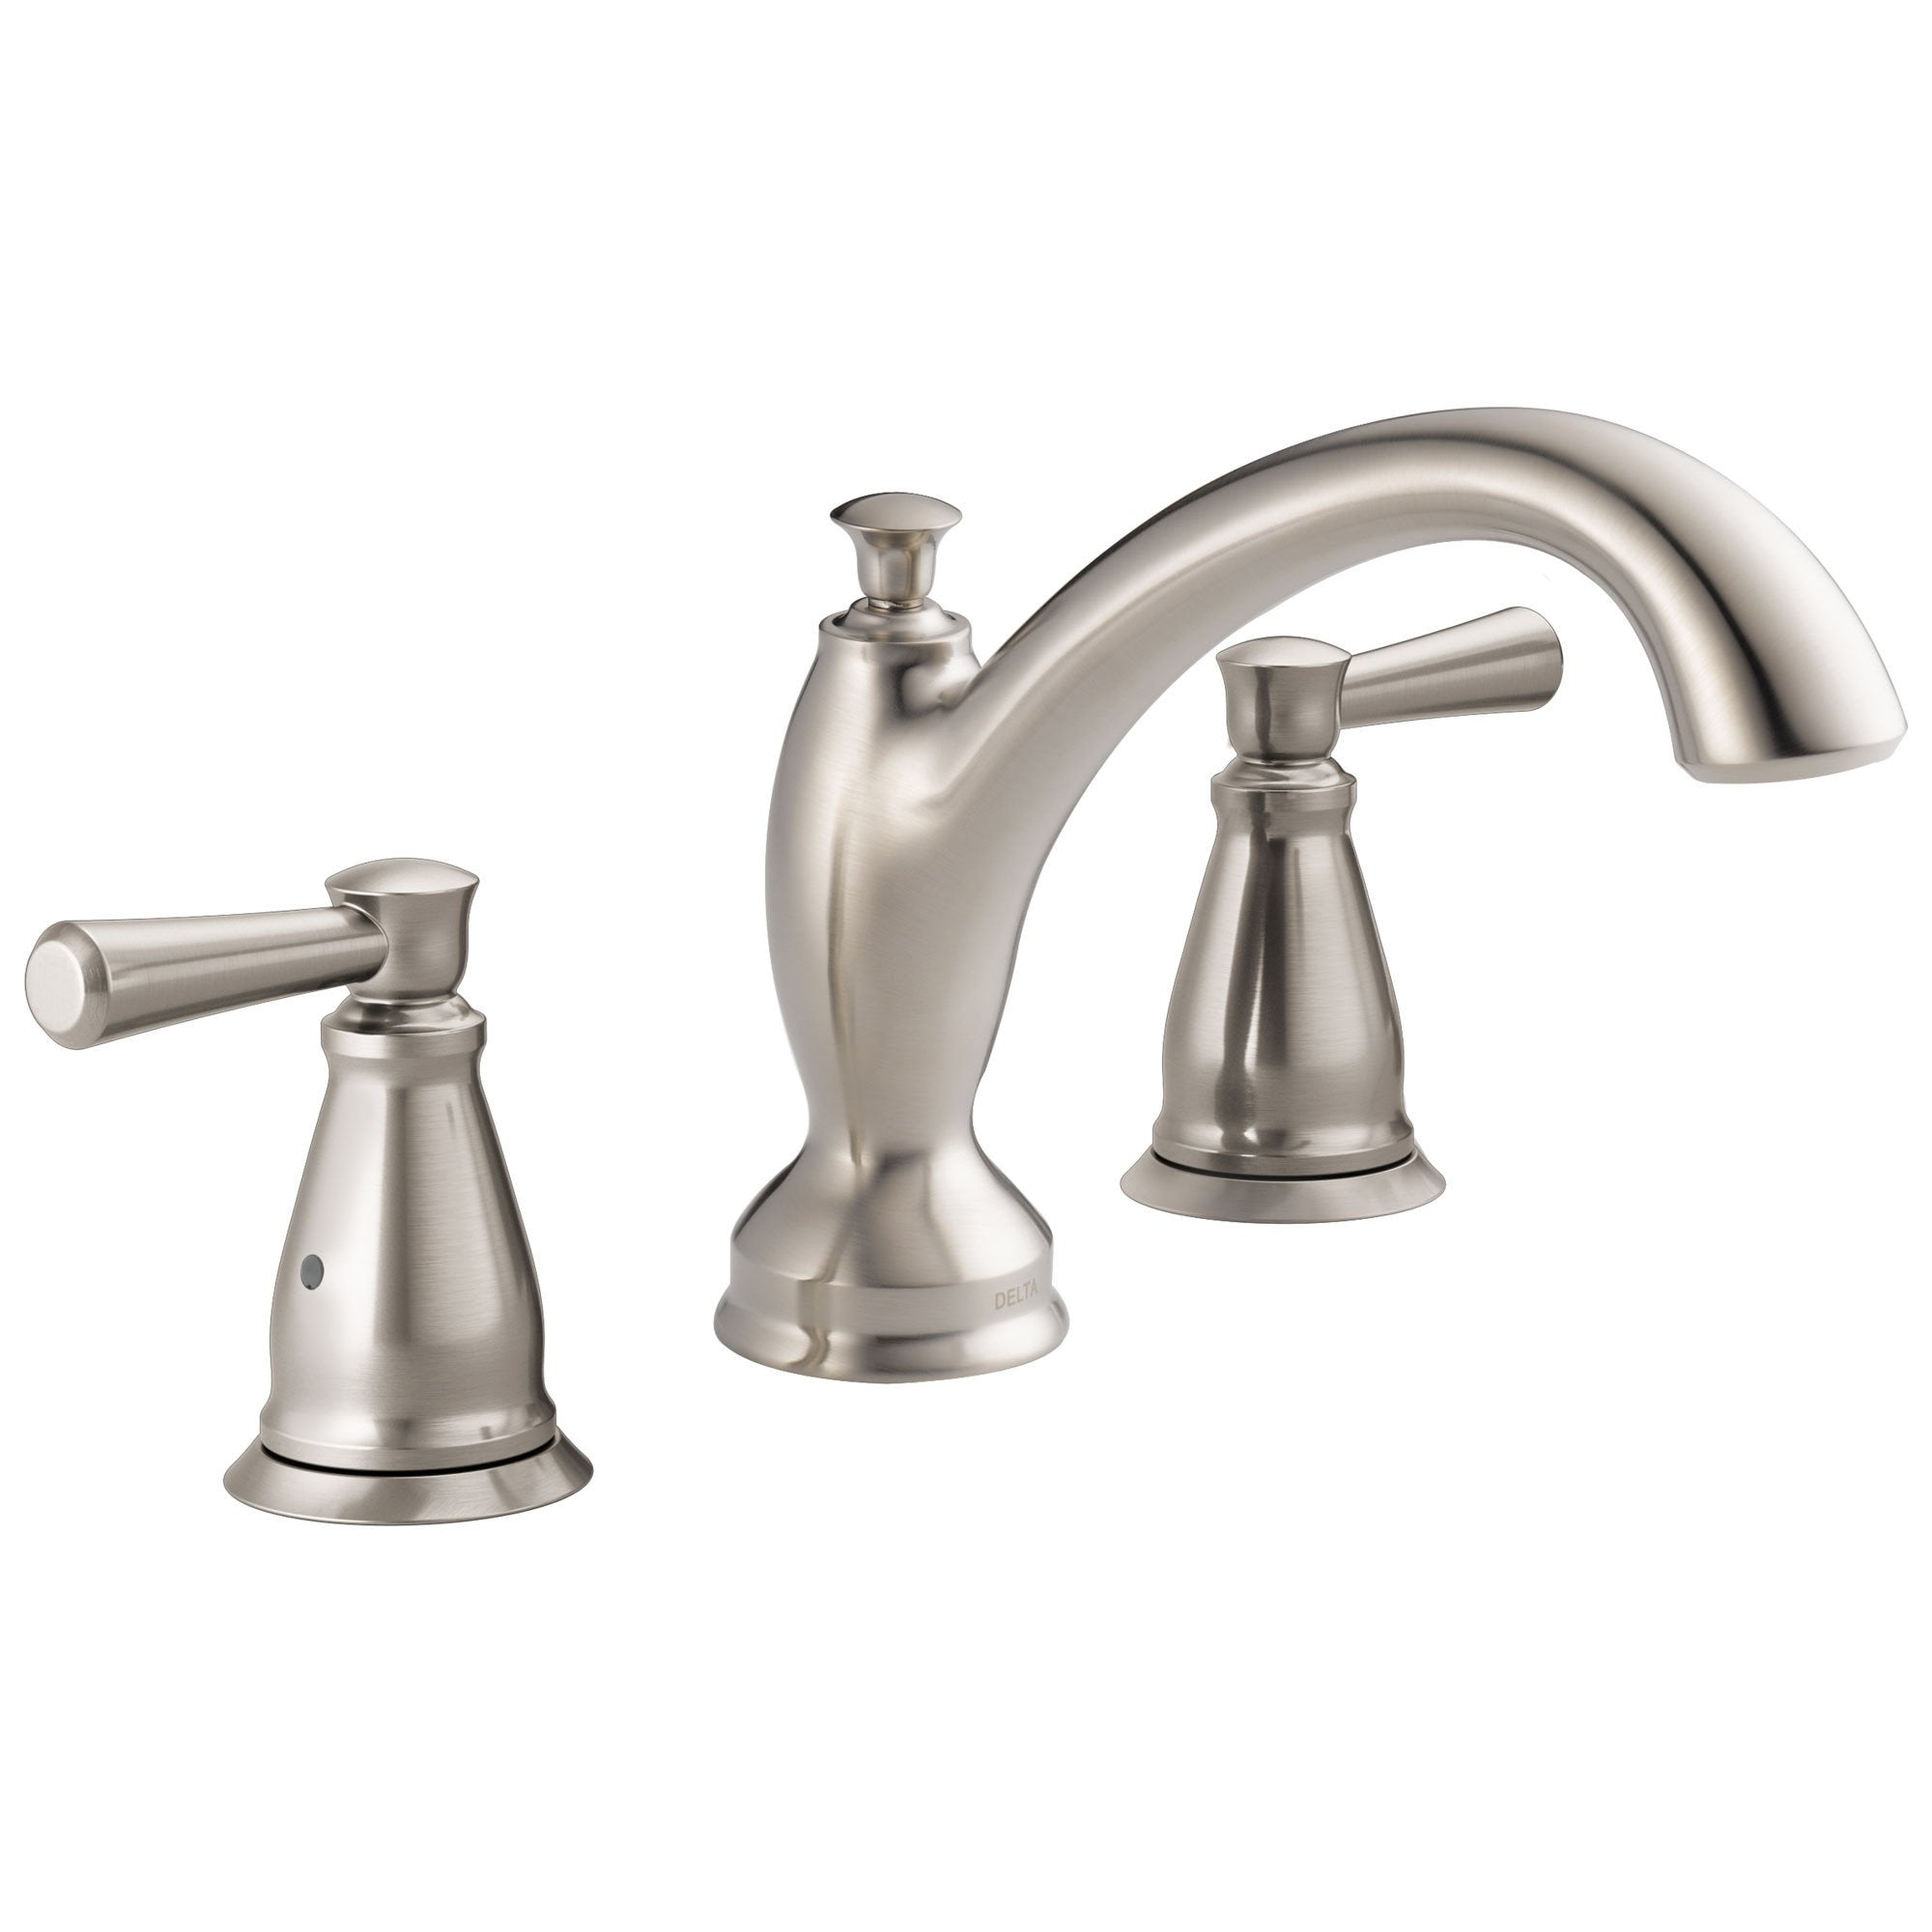 Delta Linden Collection Stainless Steel Finish Widespread Roman Tub Filler Faucet Trim Kit (Rough-in Valve Sold Separately) DT2793SS